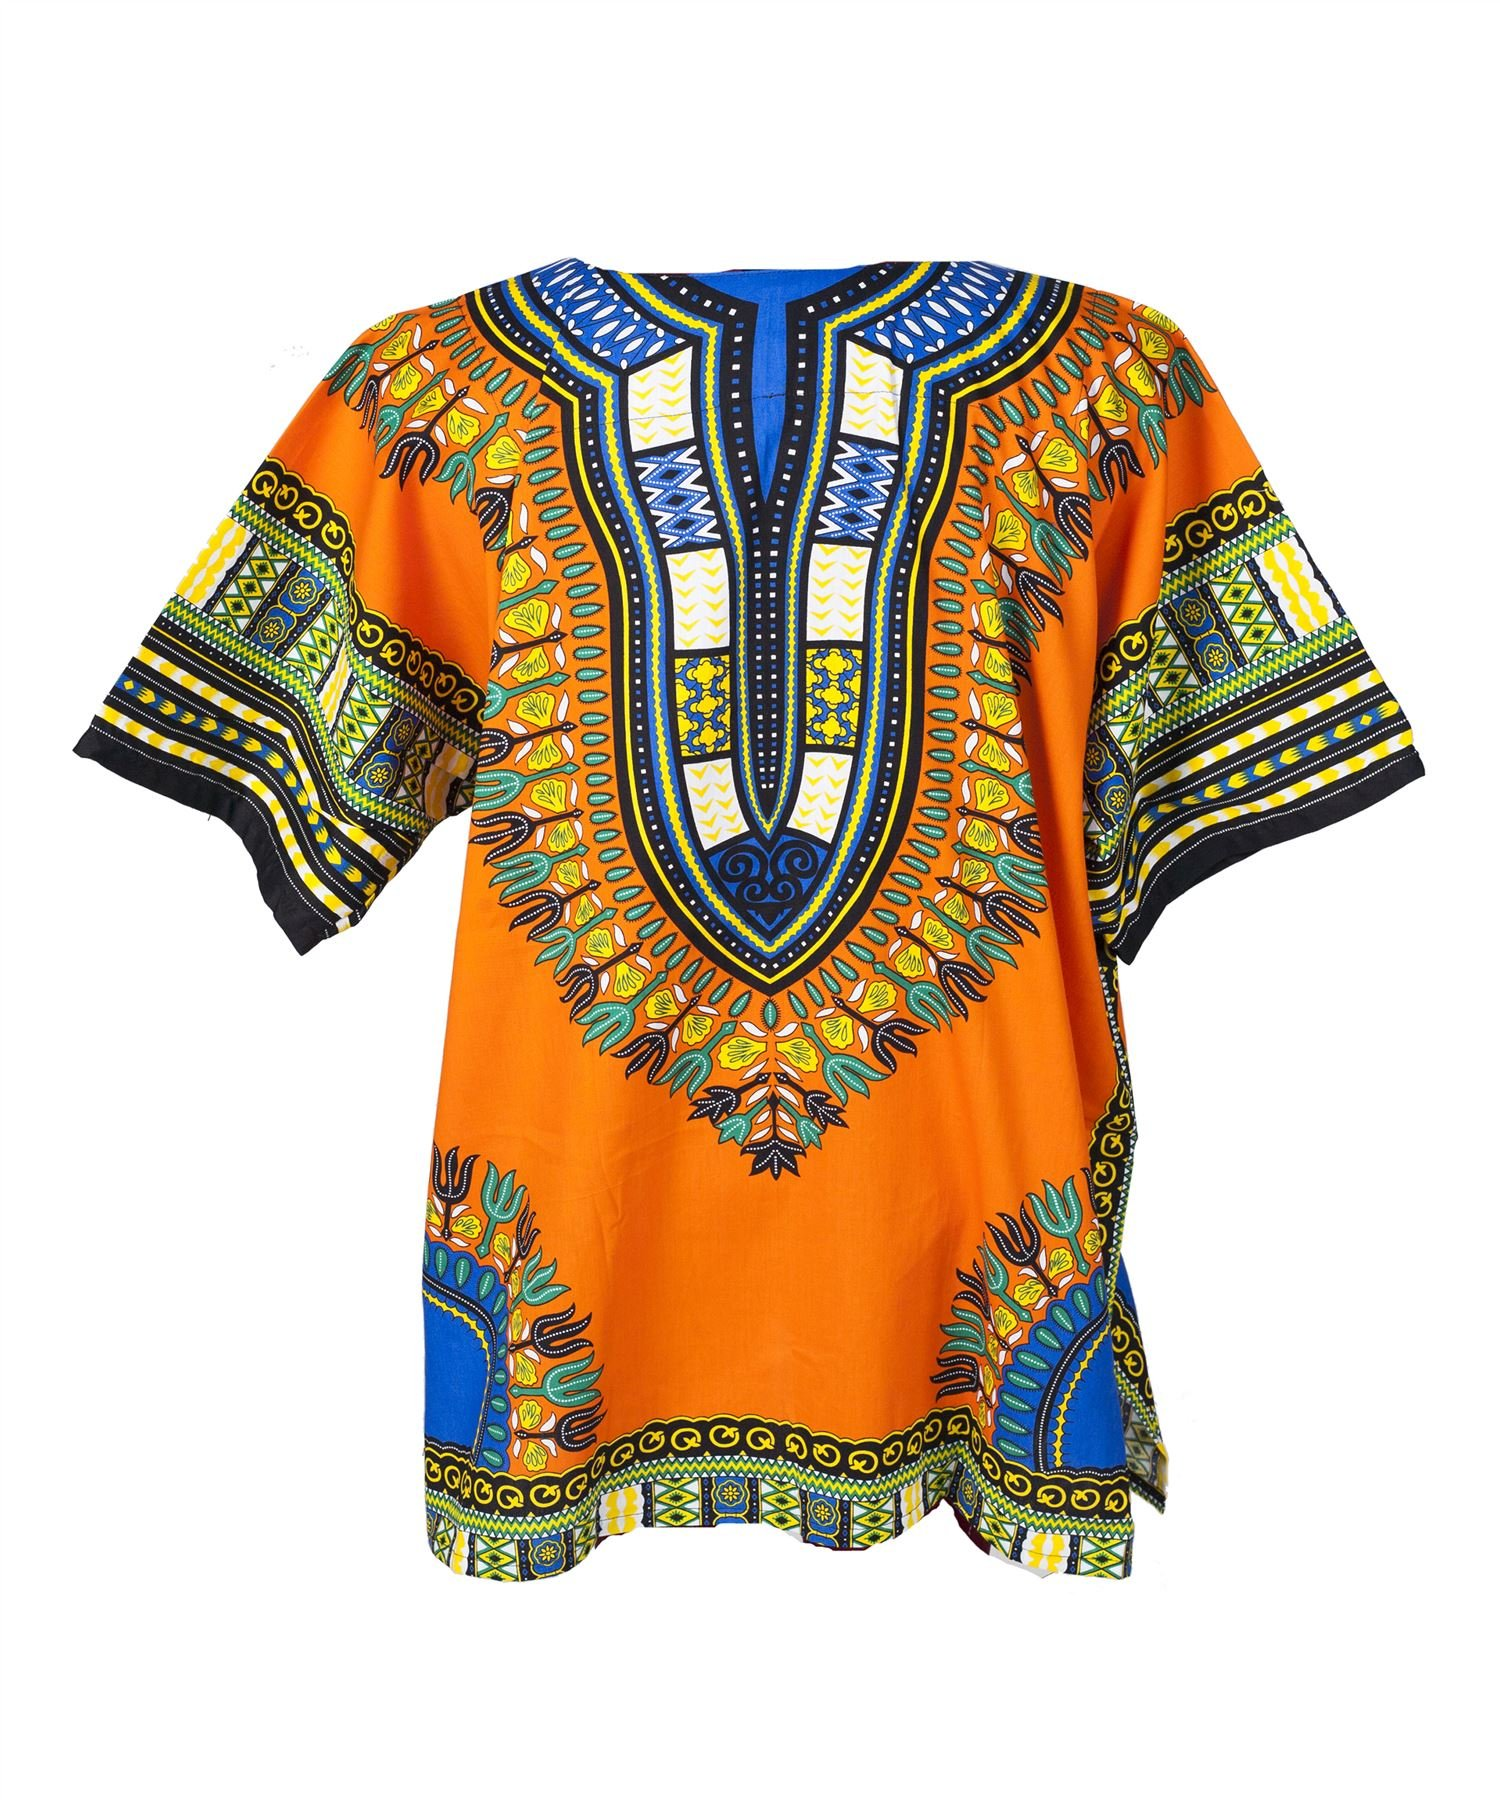 Lofbaz Traditional African Print Unisex Dashiki Size XXL Orange by Lofbaz (Image #2)